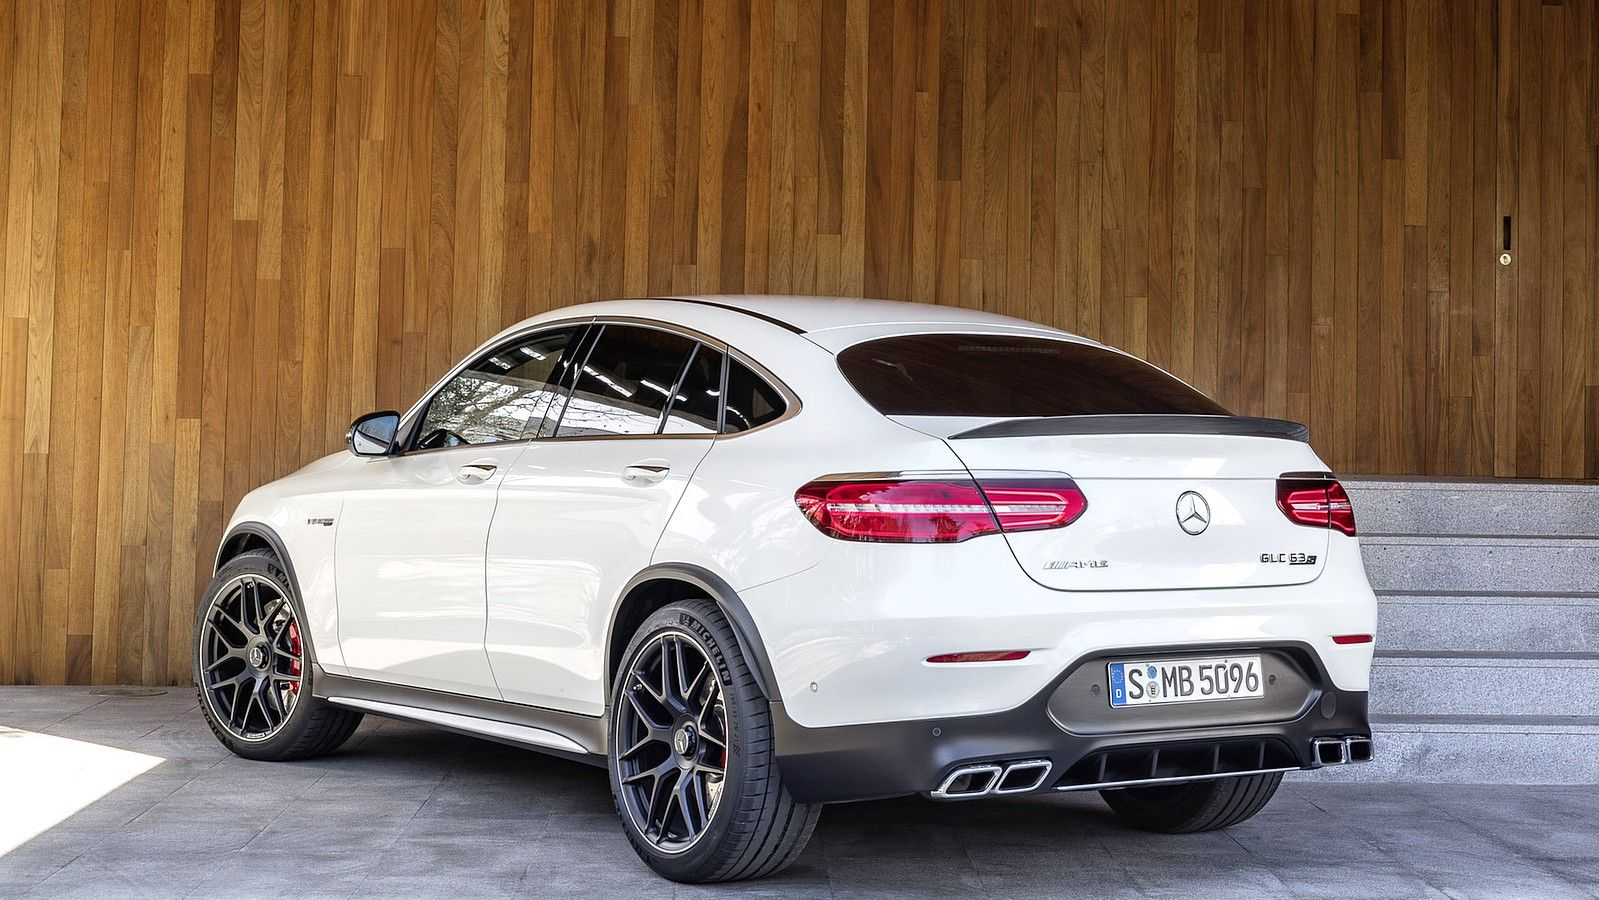 2020 Mercedes AMG GLC 63 Coupe SUV white rear three quarters